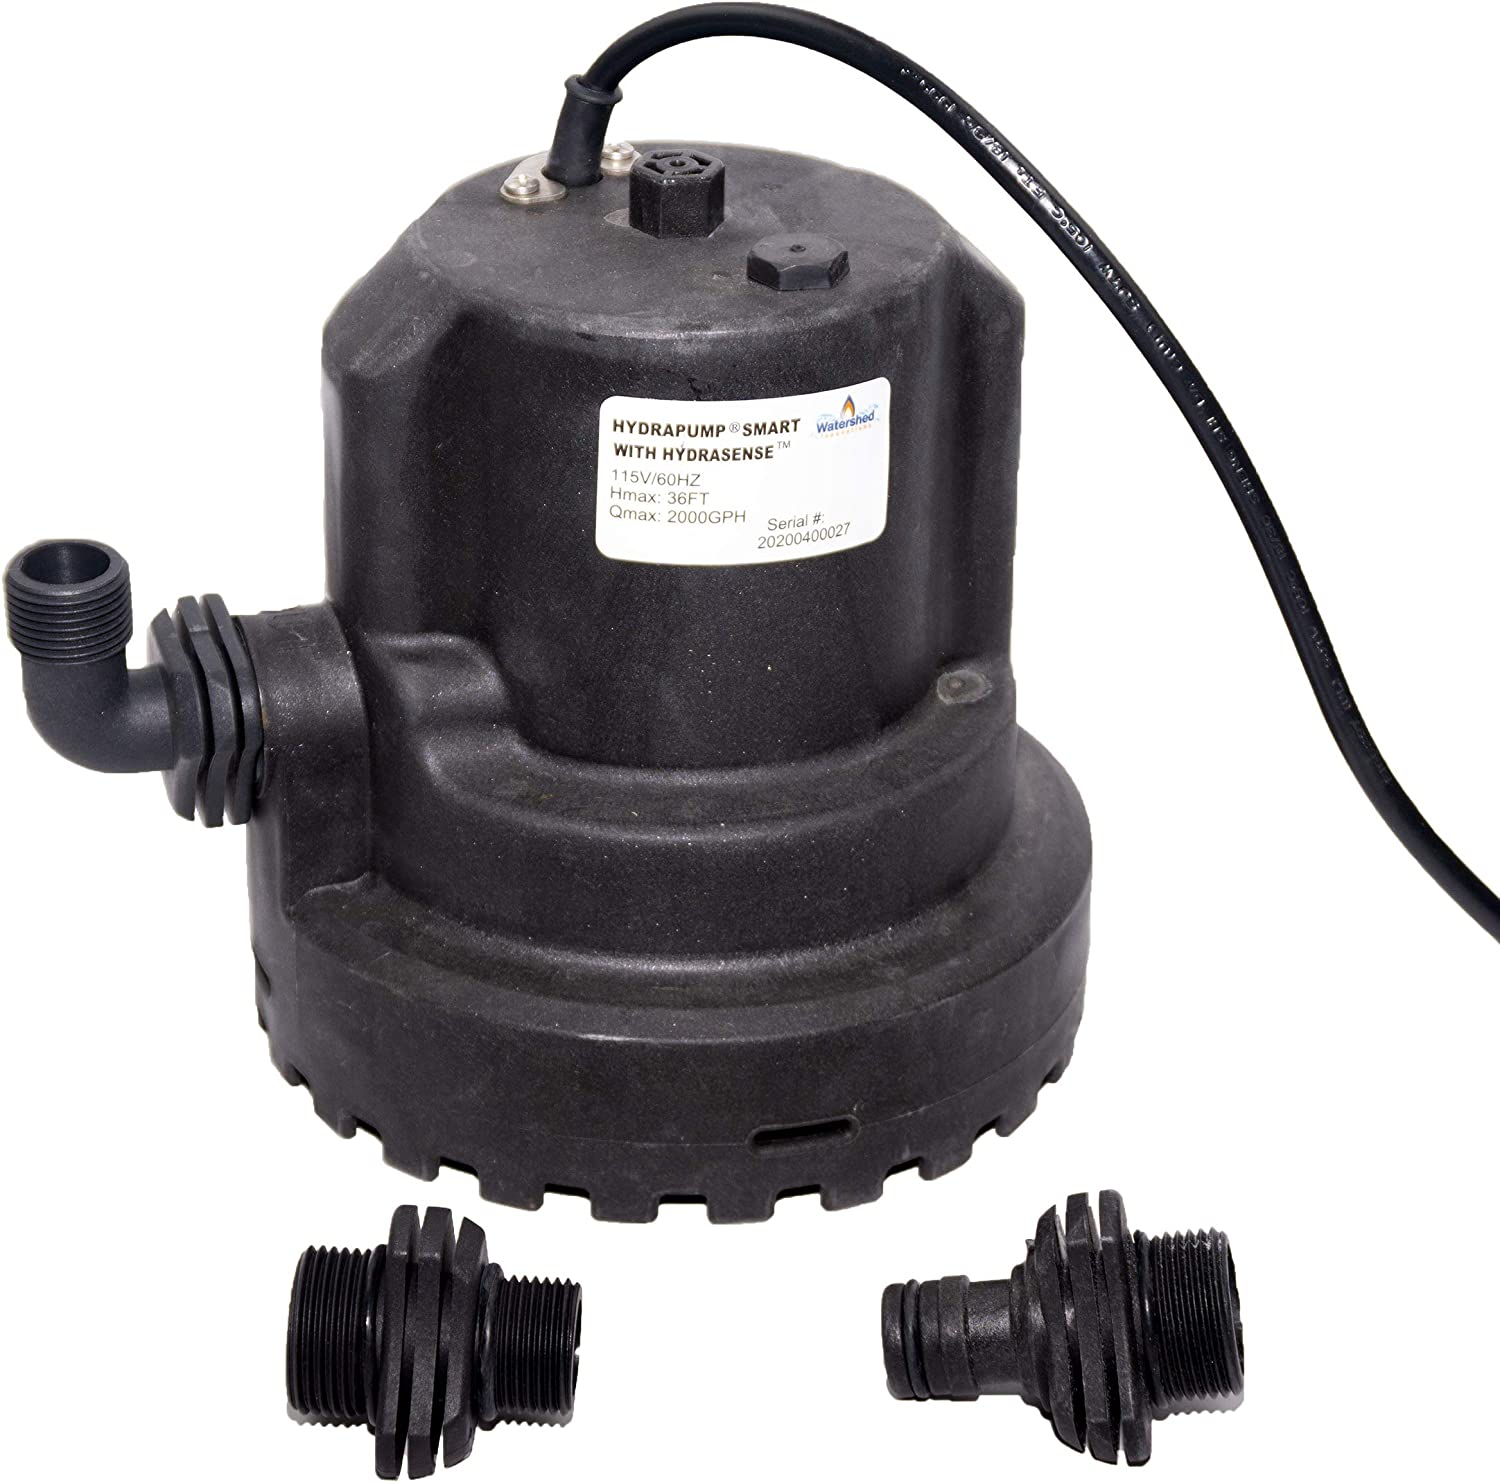 HydraPump Smart v1.2 - Water Pump with improved HydraSense technology for automatic operation